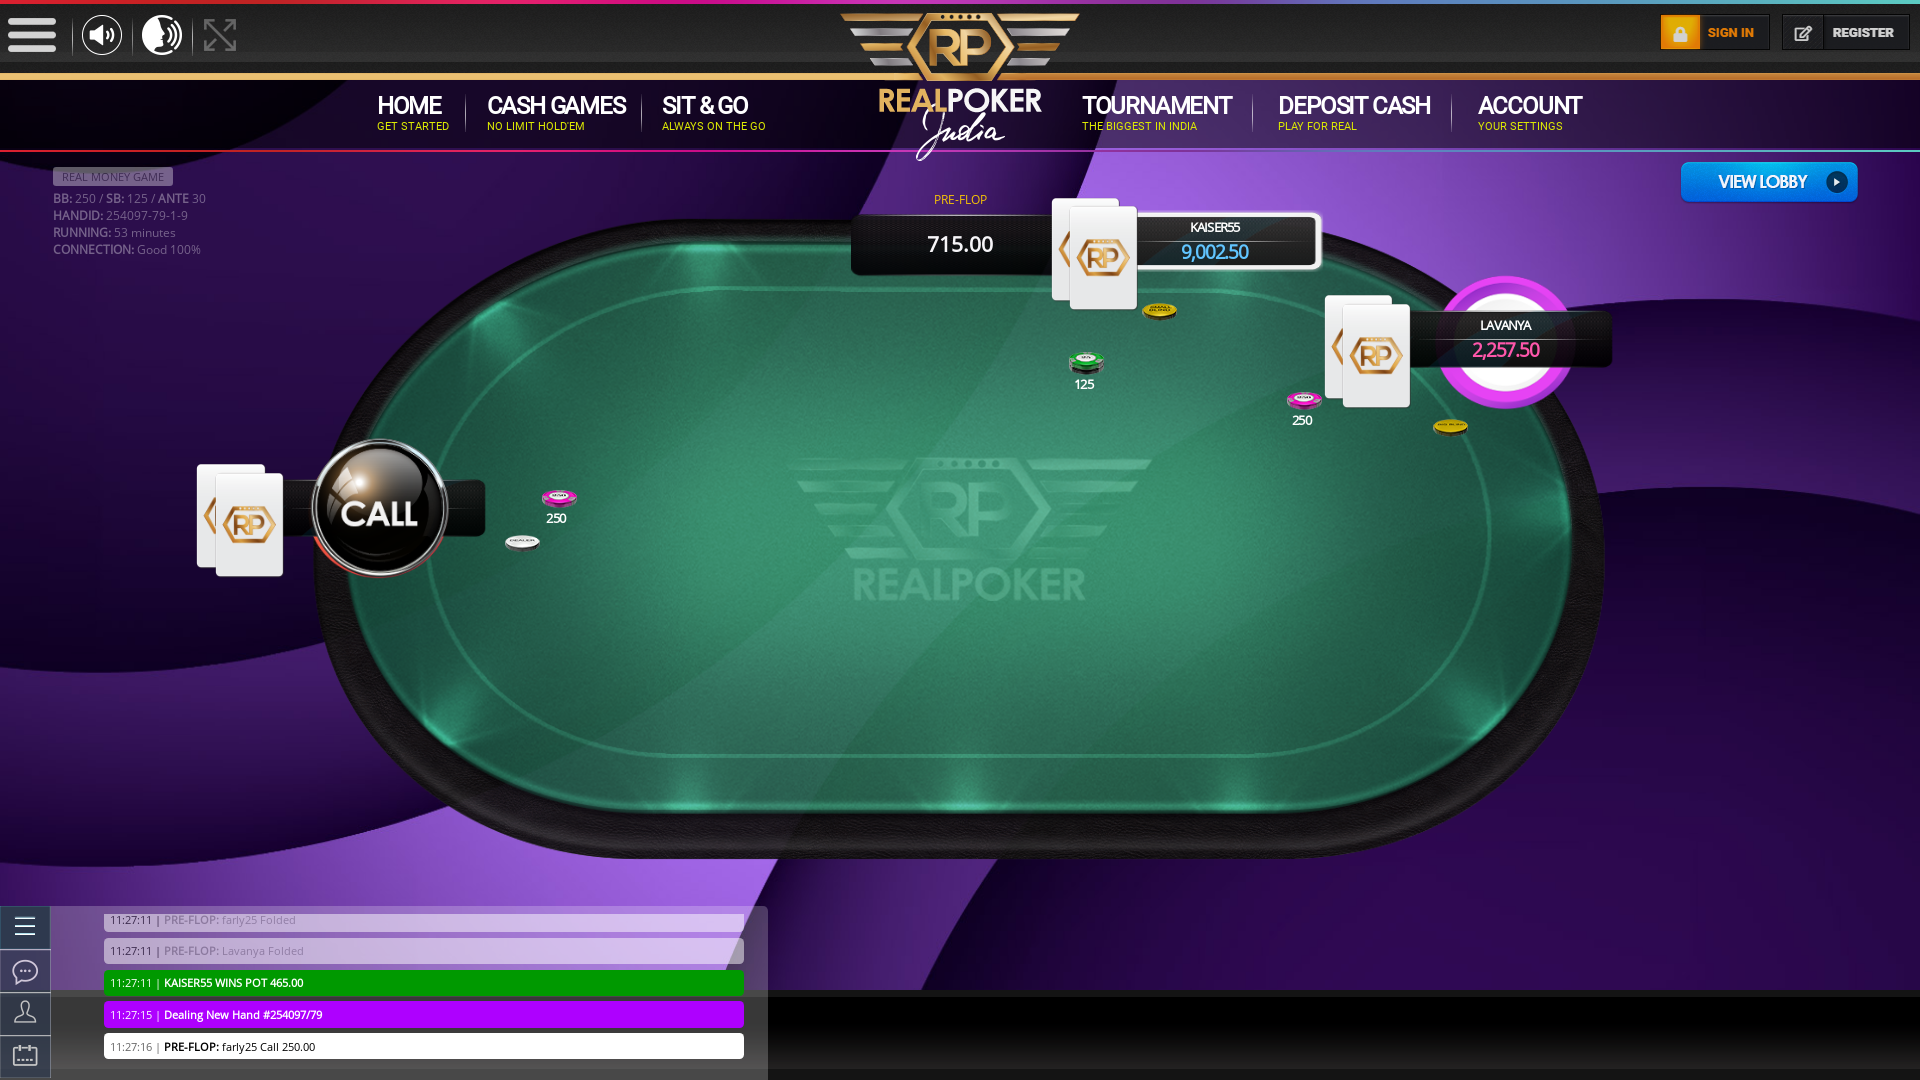 Indian 10 player poker in the 52nd minute